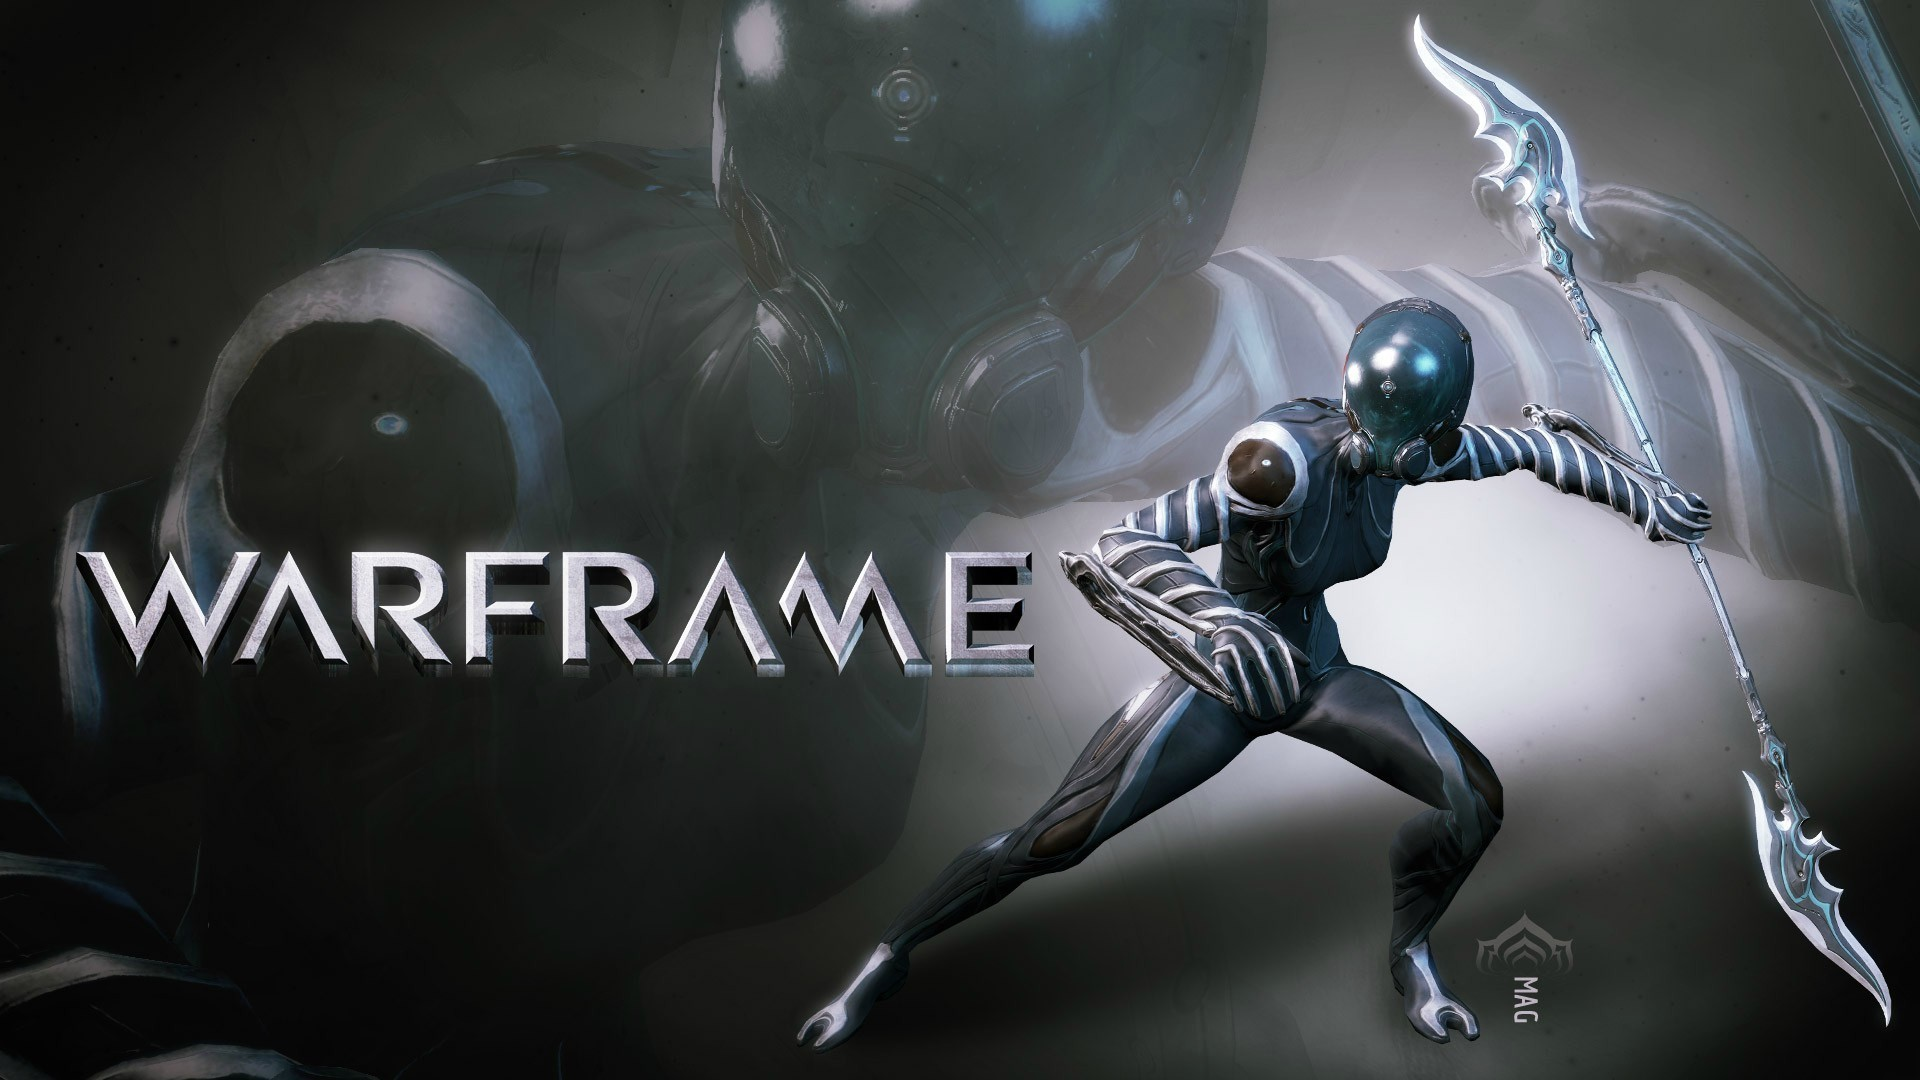 High Resolution Wallpapers = warframe wallpaper by Albany Backer  (2017-03-24)